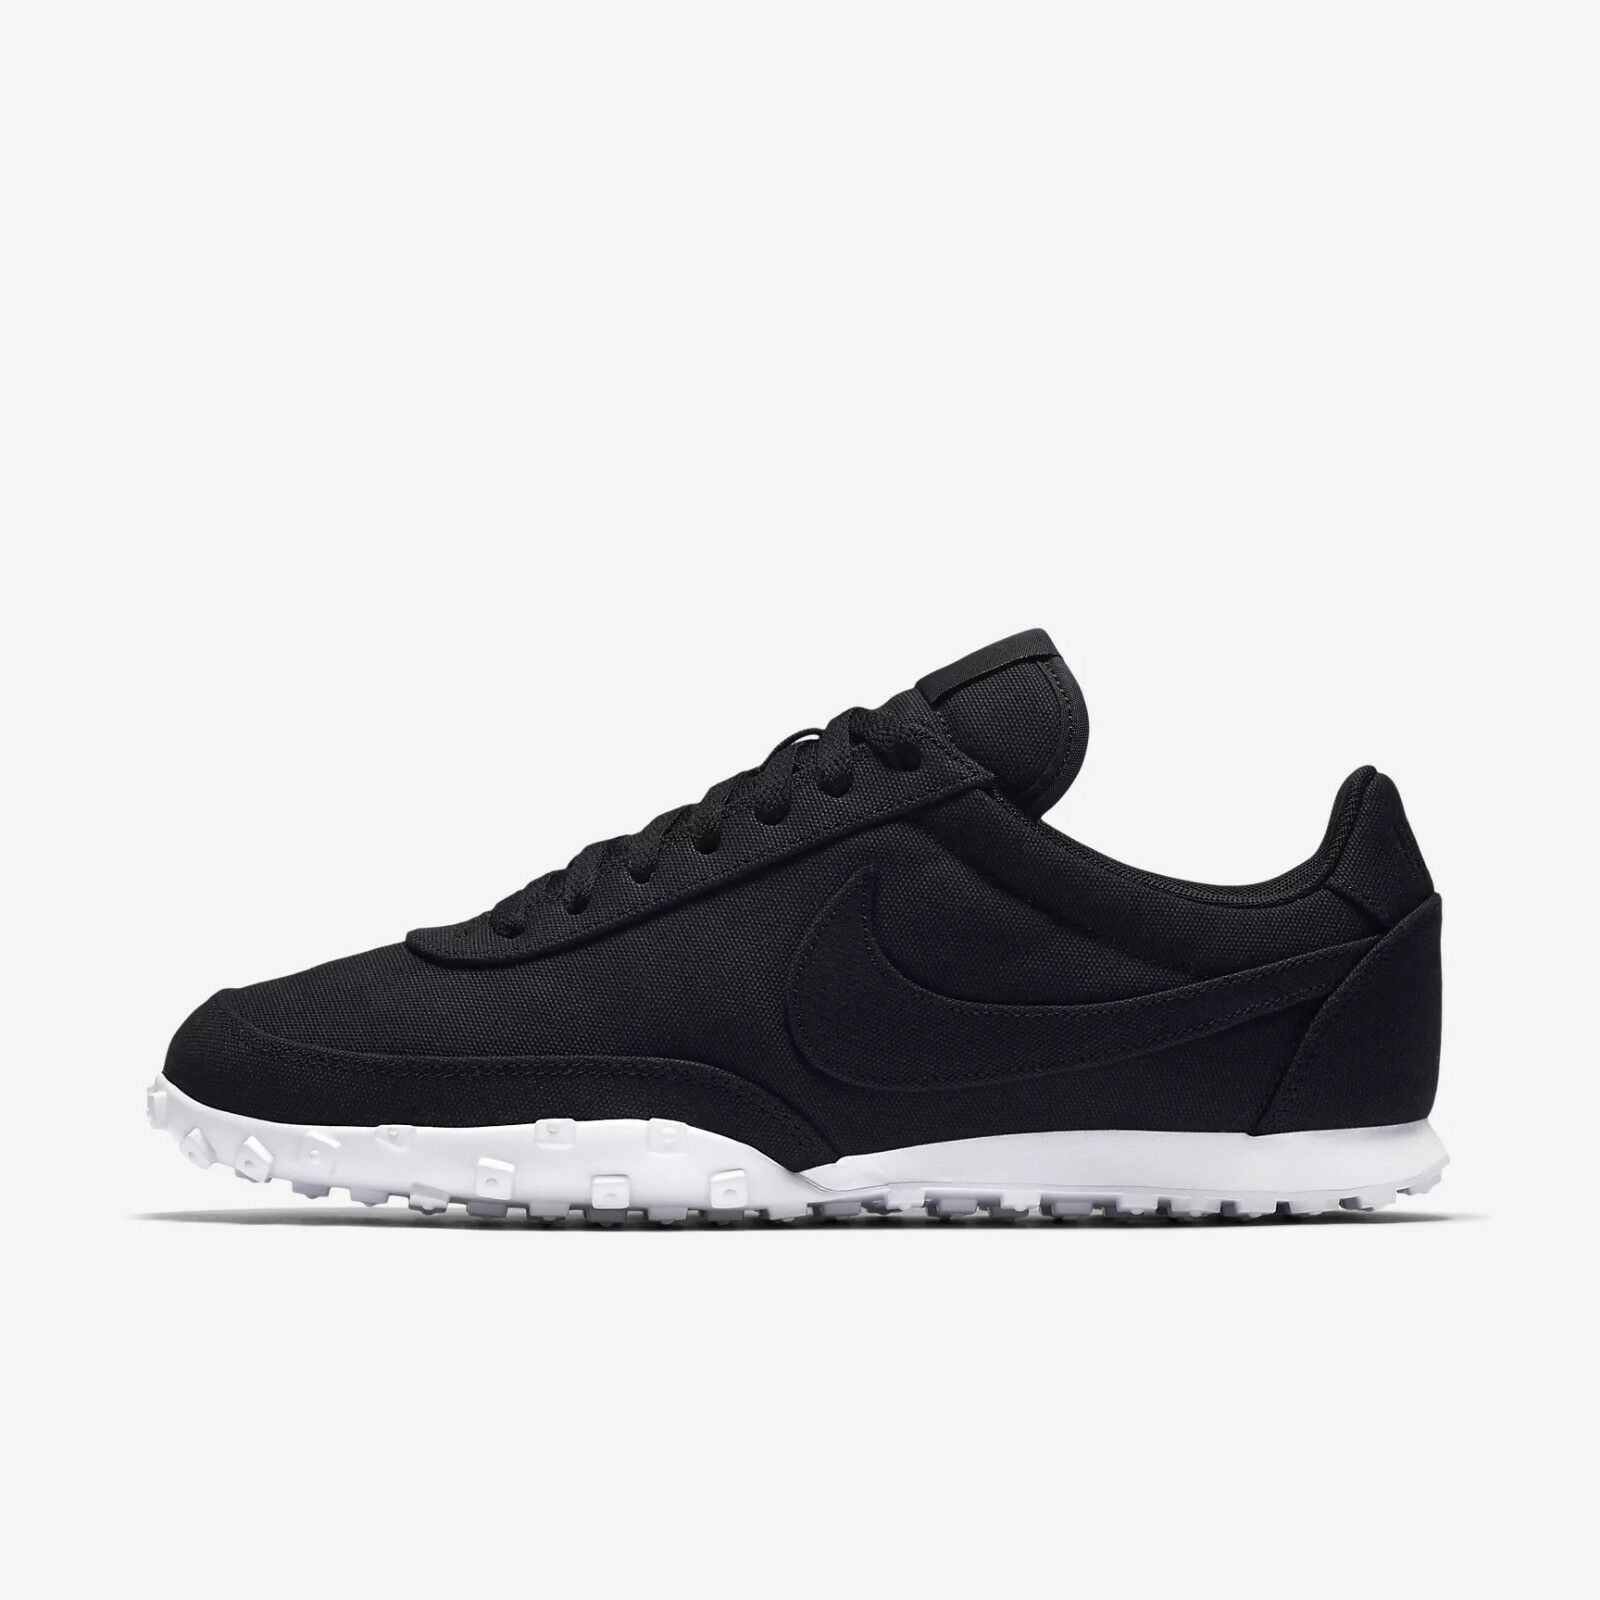 Nike Waffle Racer '17 Textile Men's Running shoes RARE - Black White 898041-002